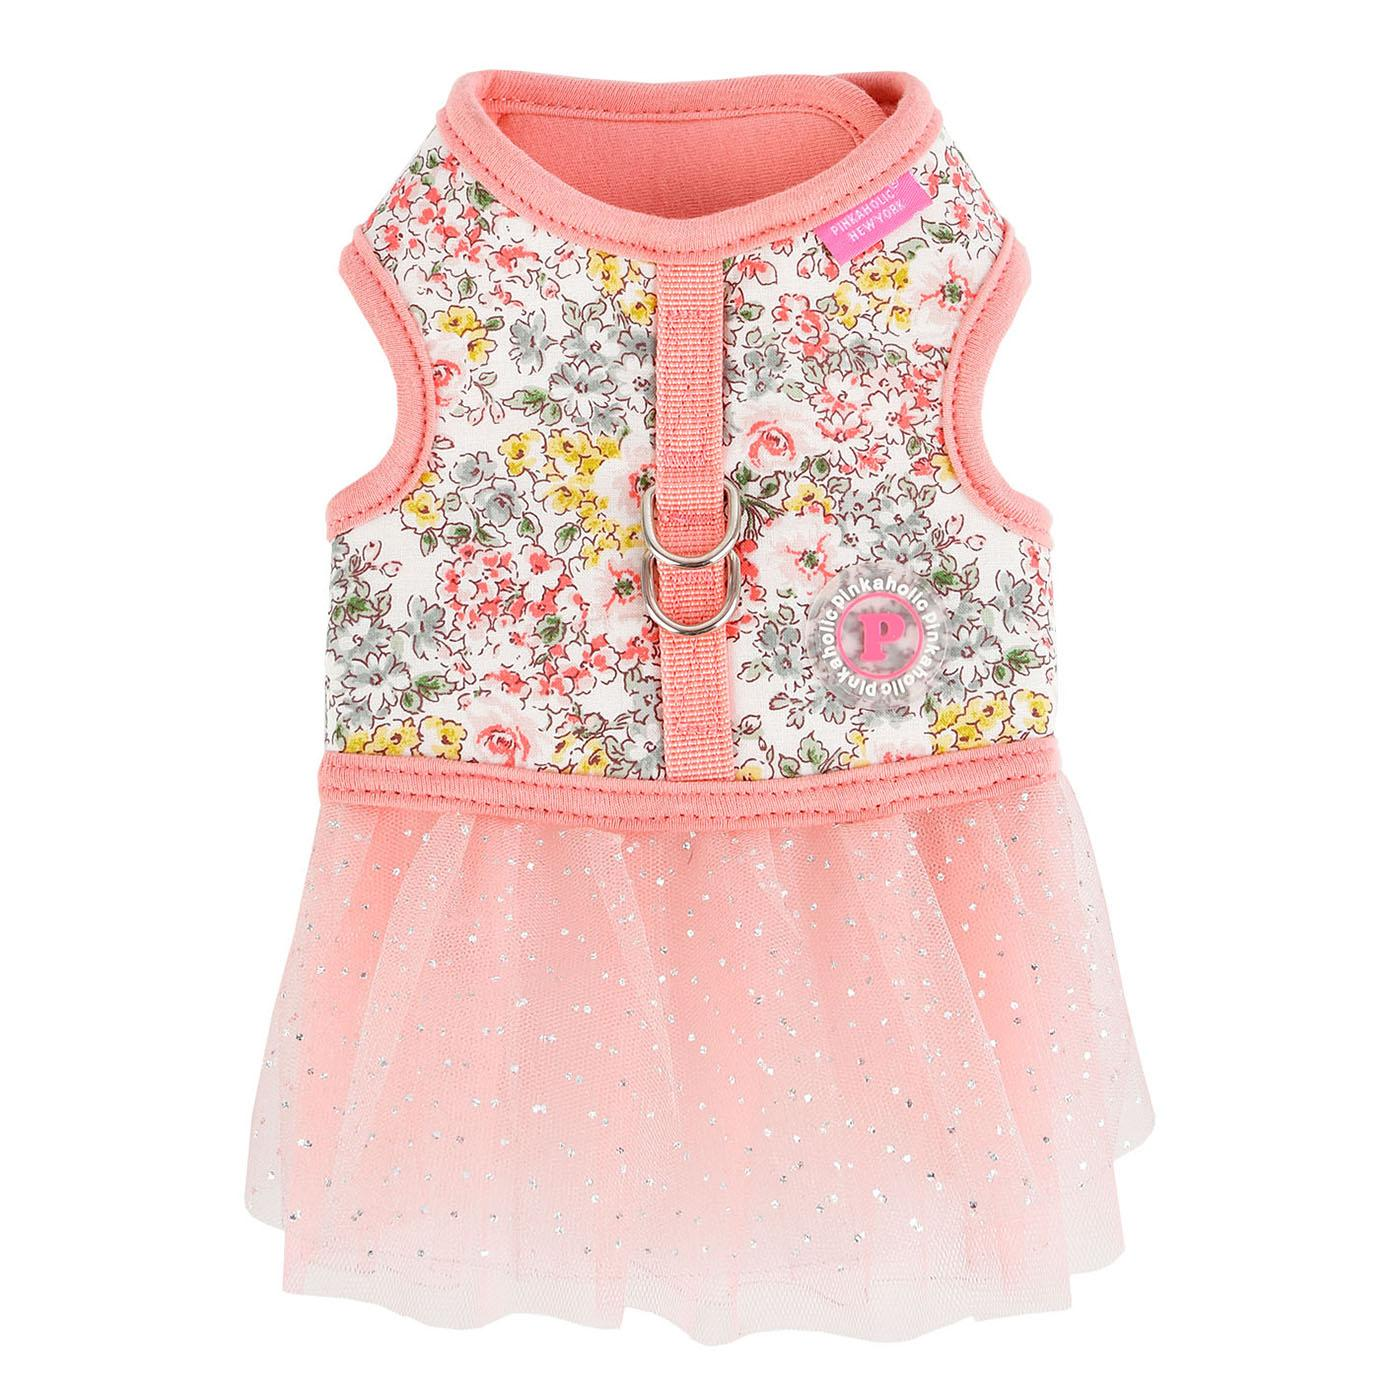 Begonia Flirt Dog Harness Dress by Pinkaholic - Pink